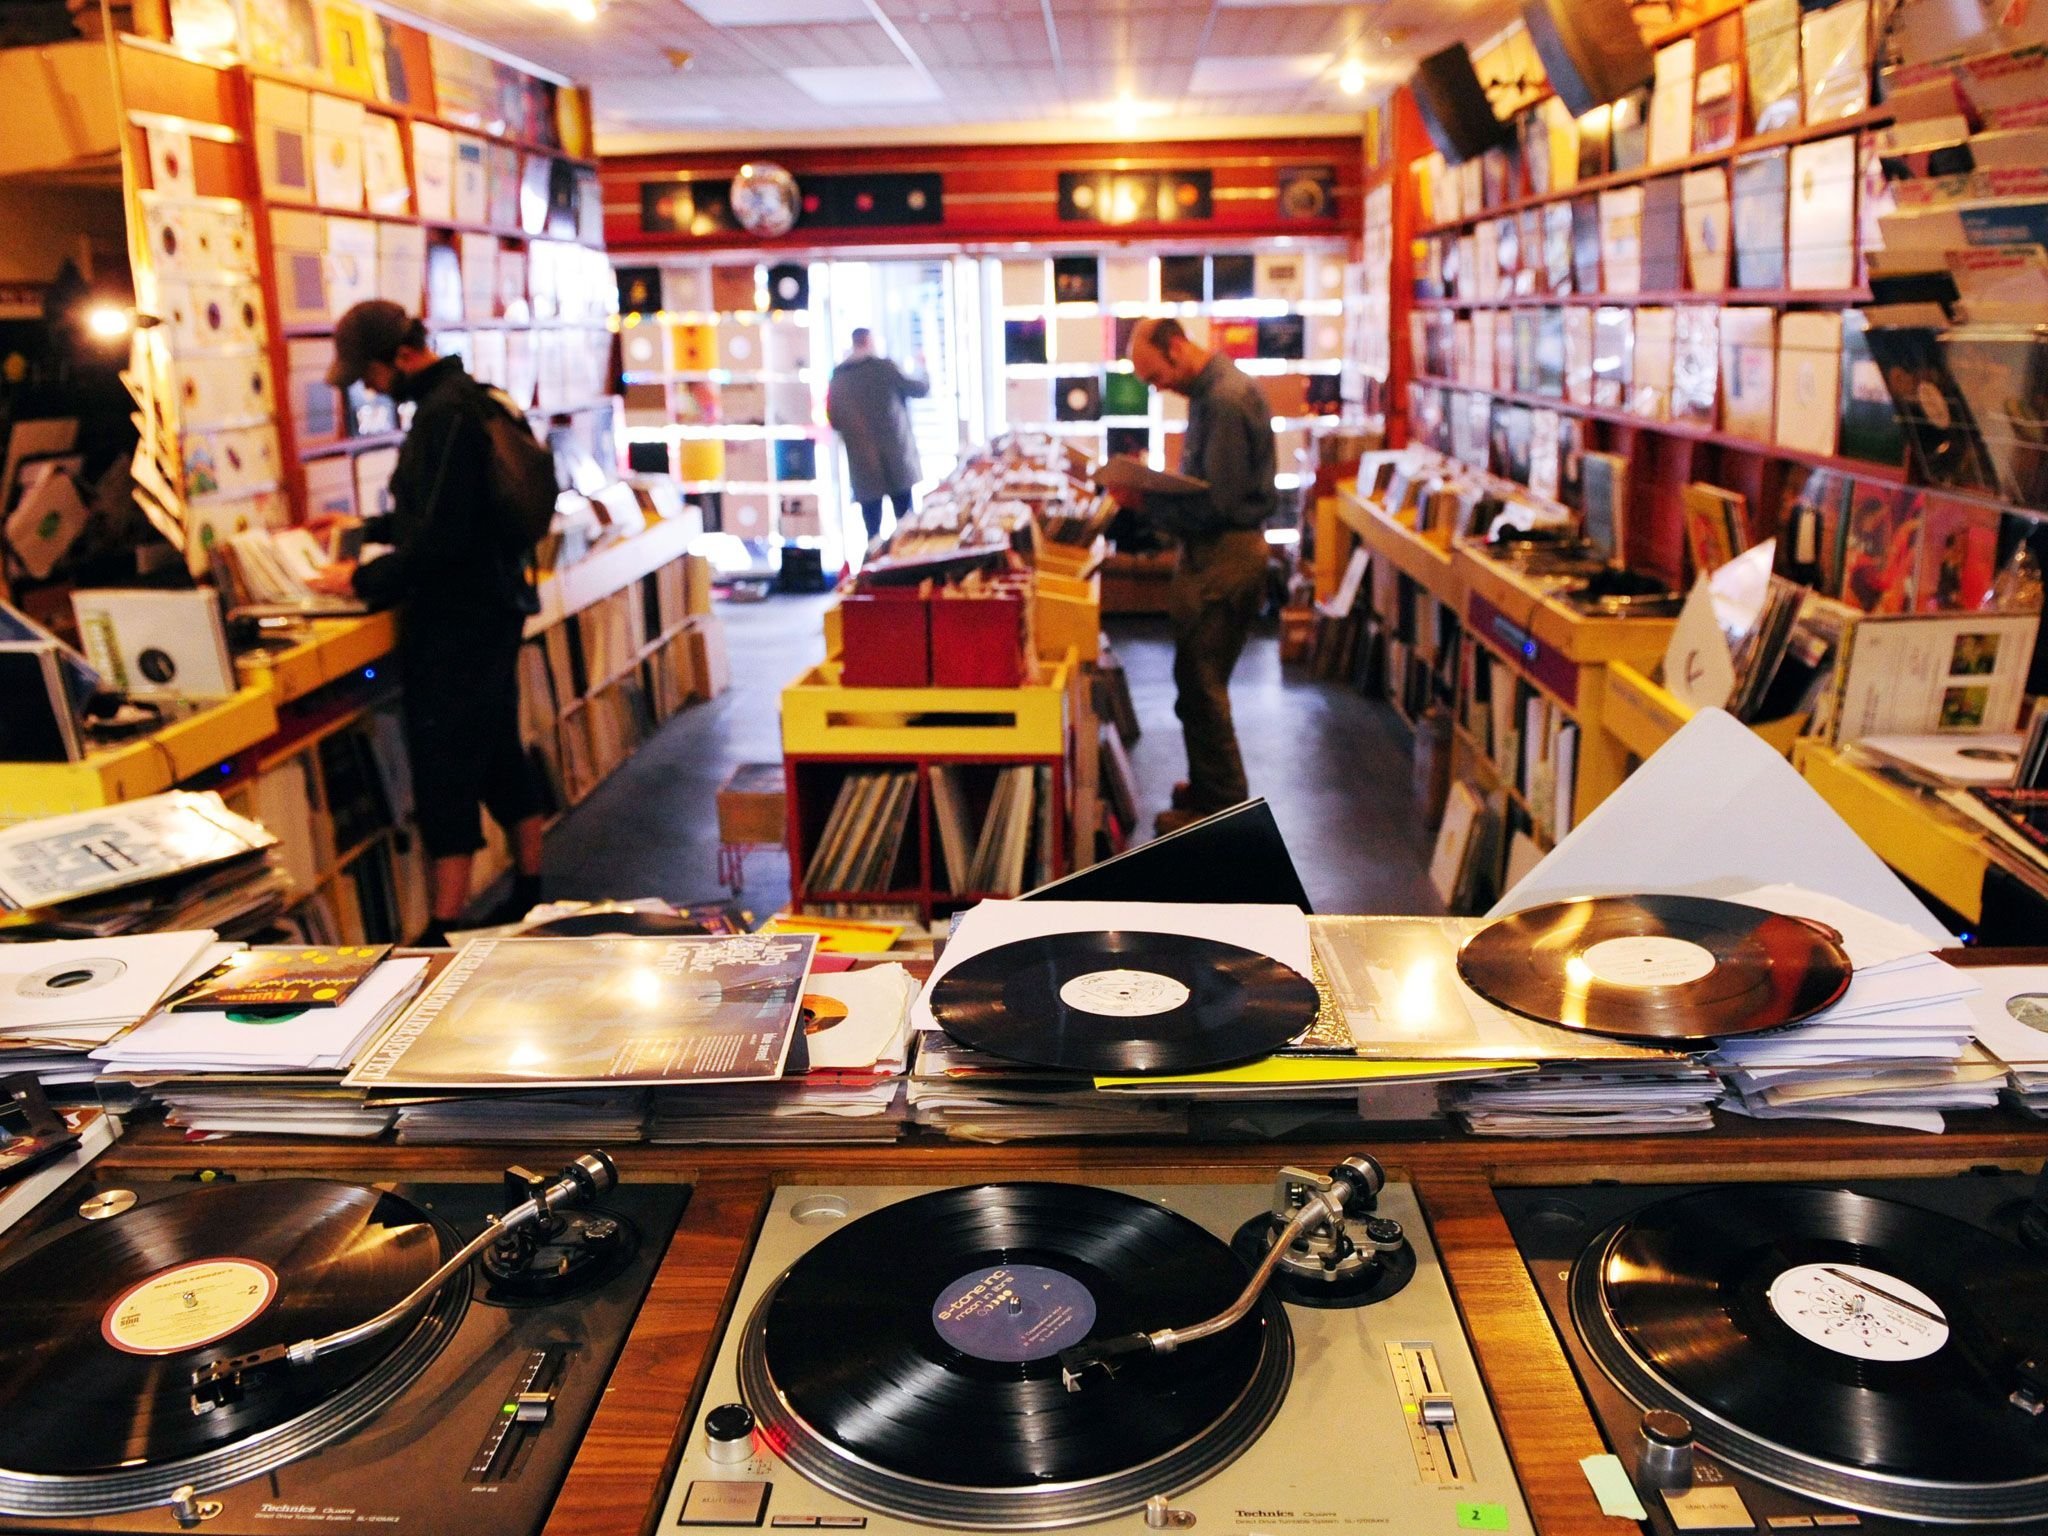 4 Reasons Why Vinyl Is Better Than Mp3 In 2020 Vinyl Record Store Record Shop Record Store